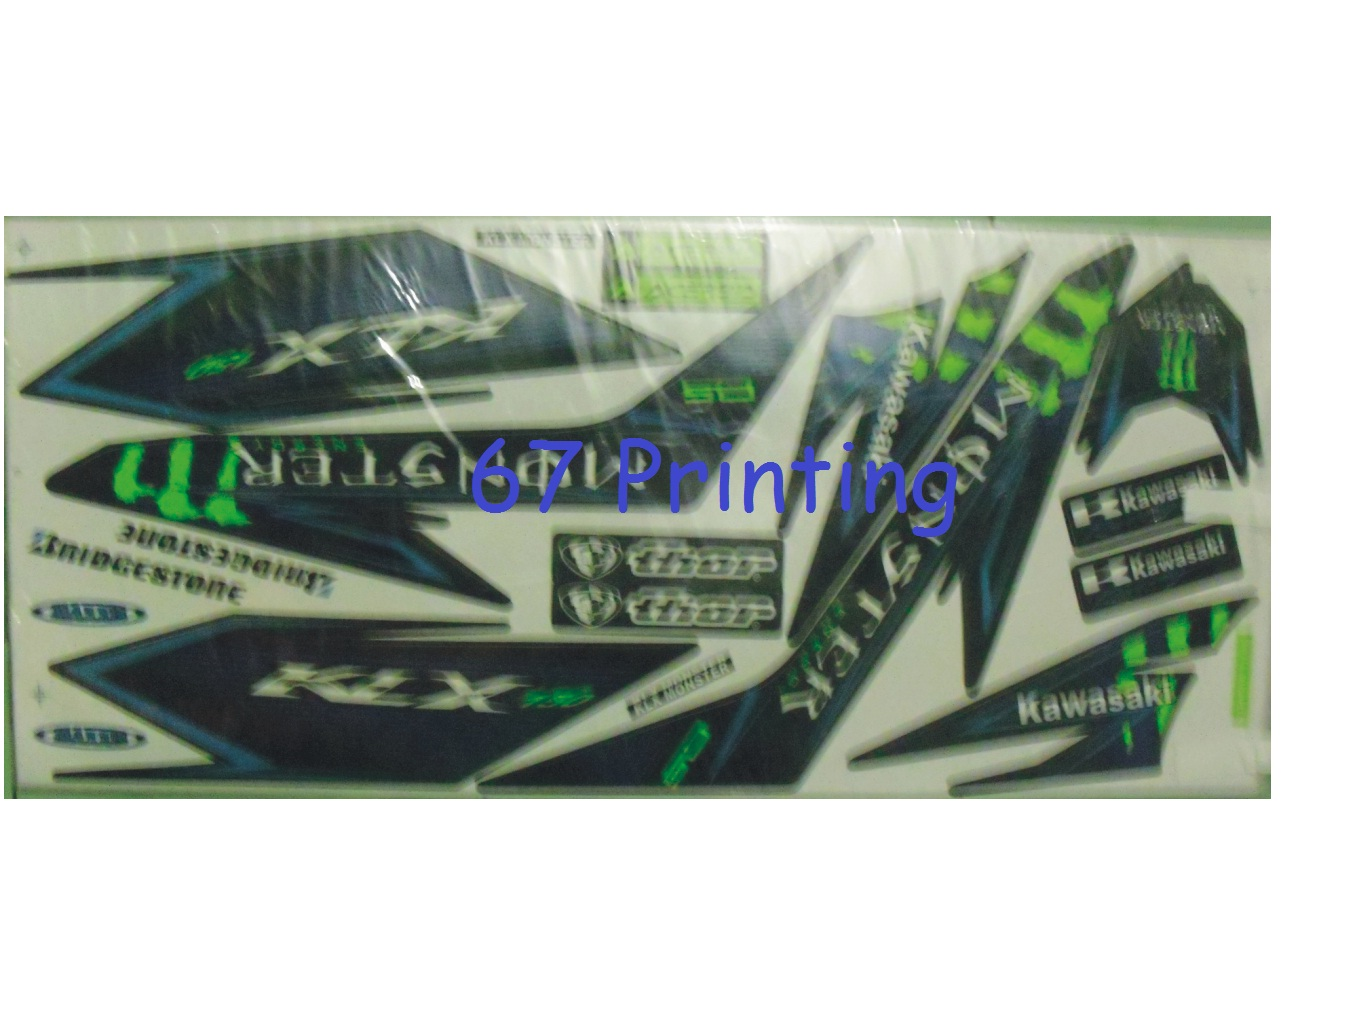 JUAL STRIPING MOTOR KAWASAKI KLX 150 MOTIF MONSTER ENERGY